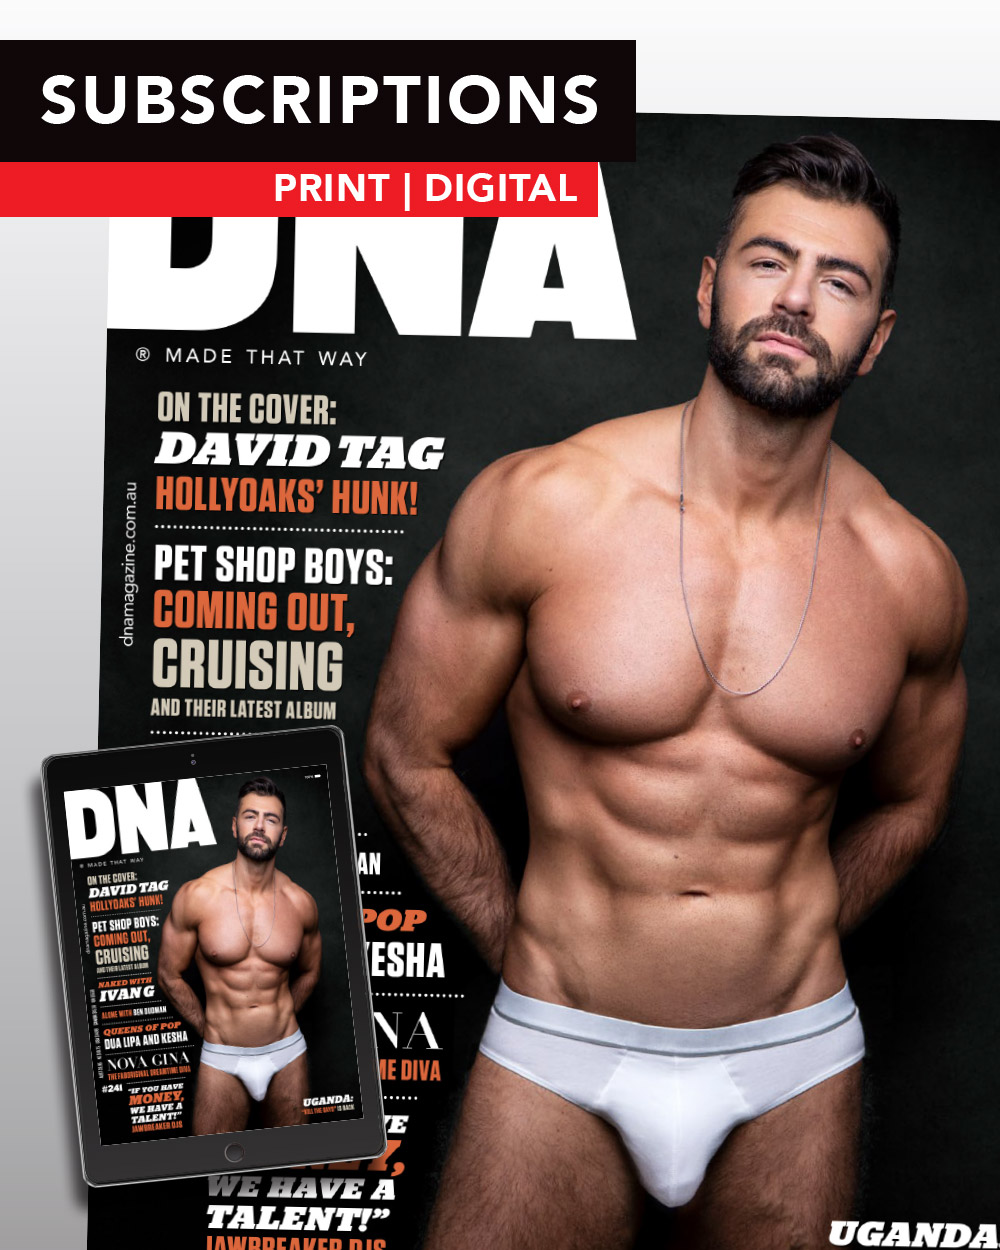 241_Subscriptions-Print-and-Digital-Feature